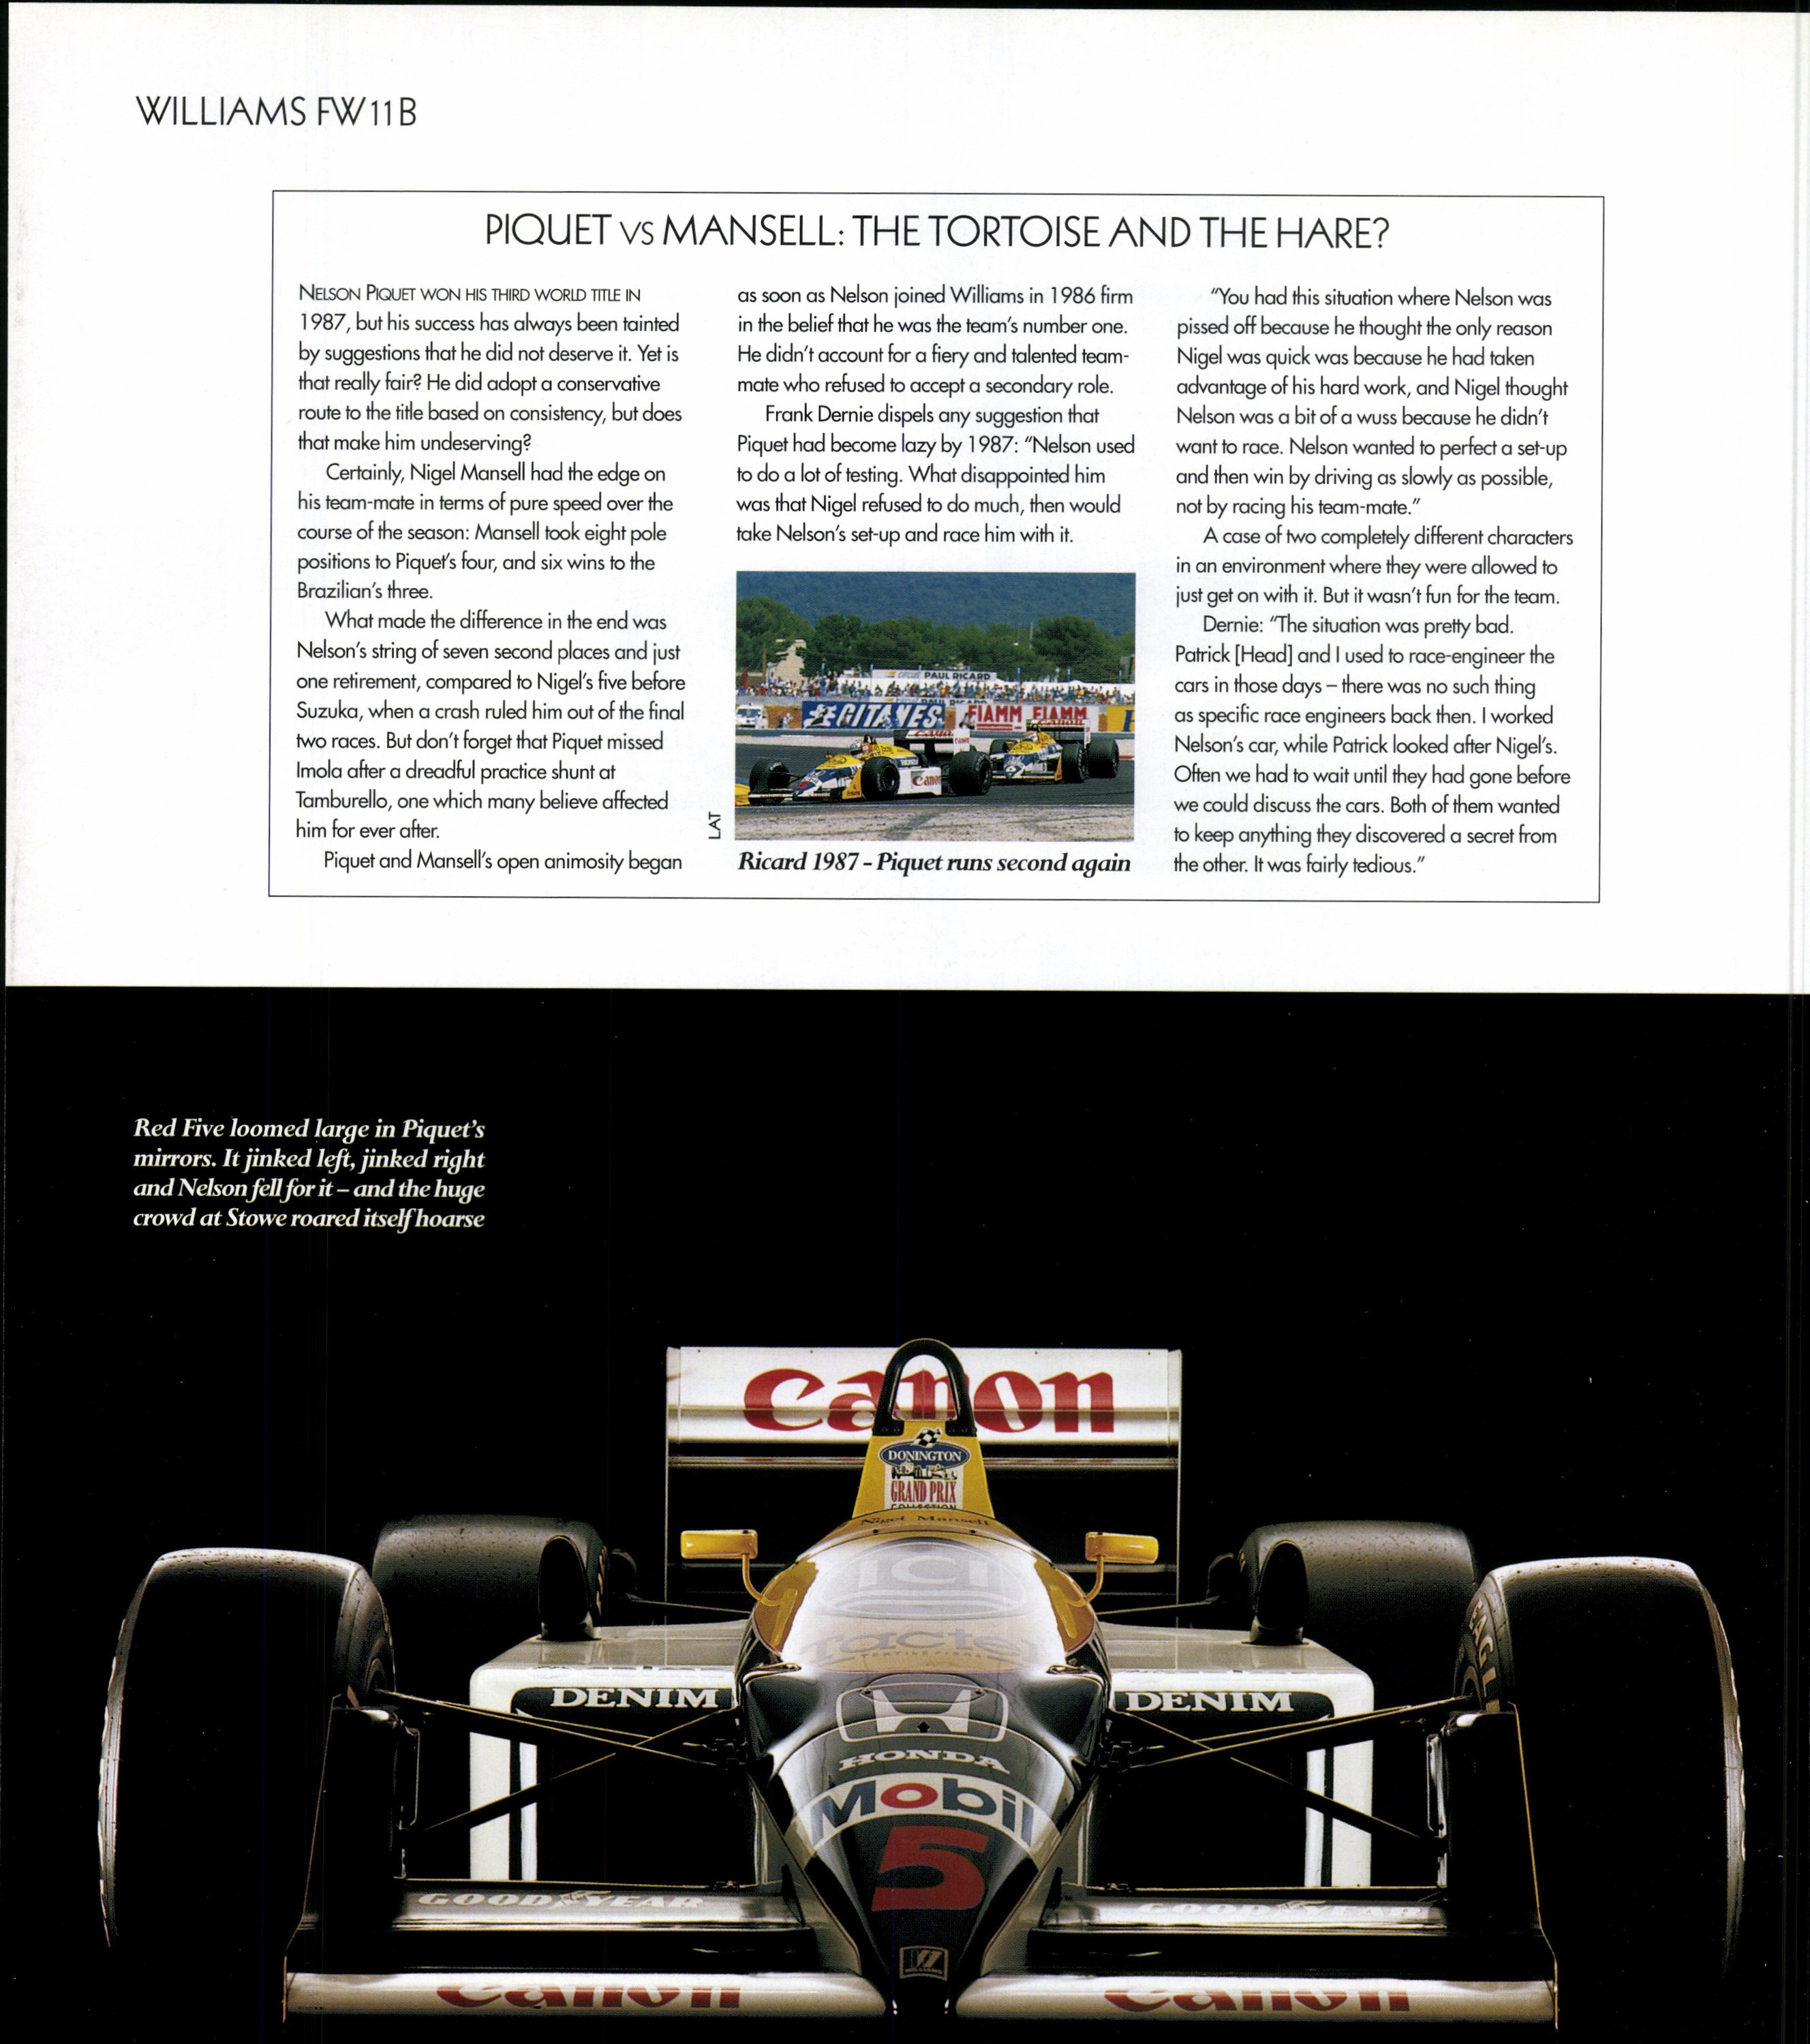 piquet vs mansell the tortoise and the hare image